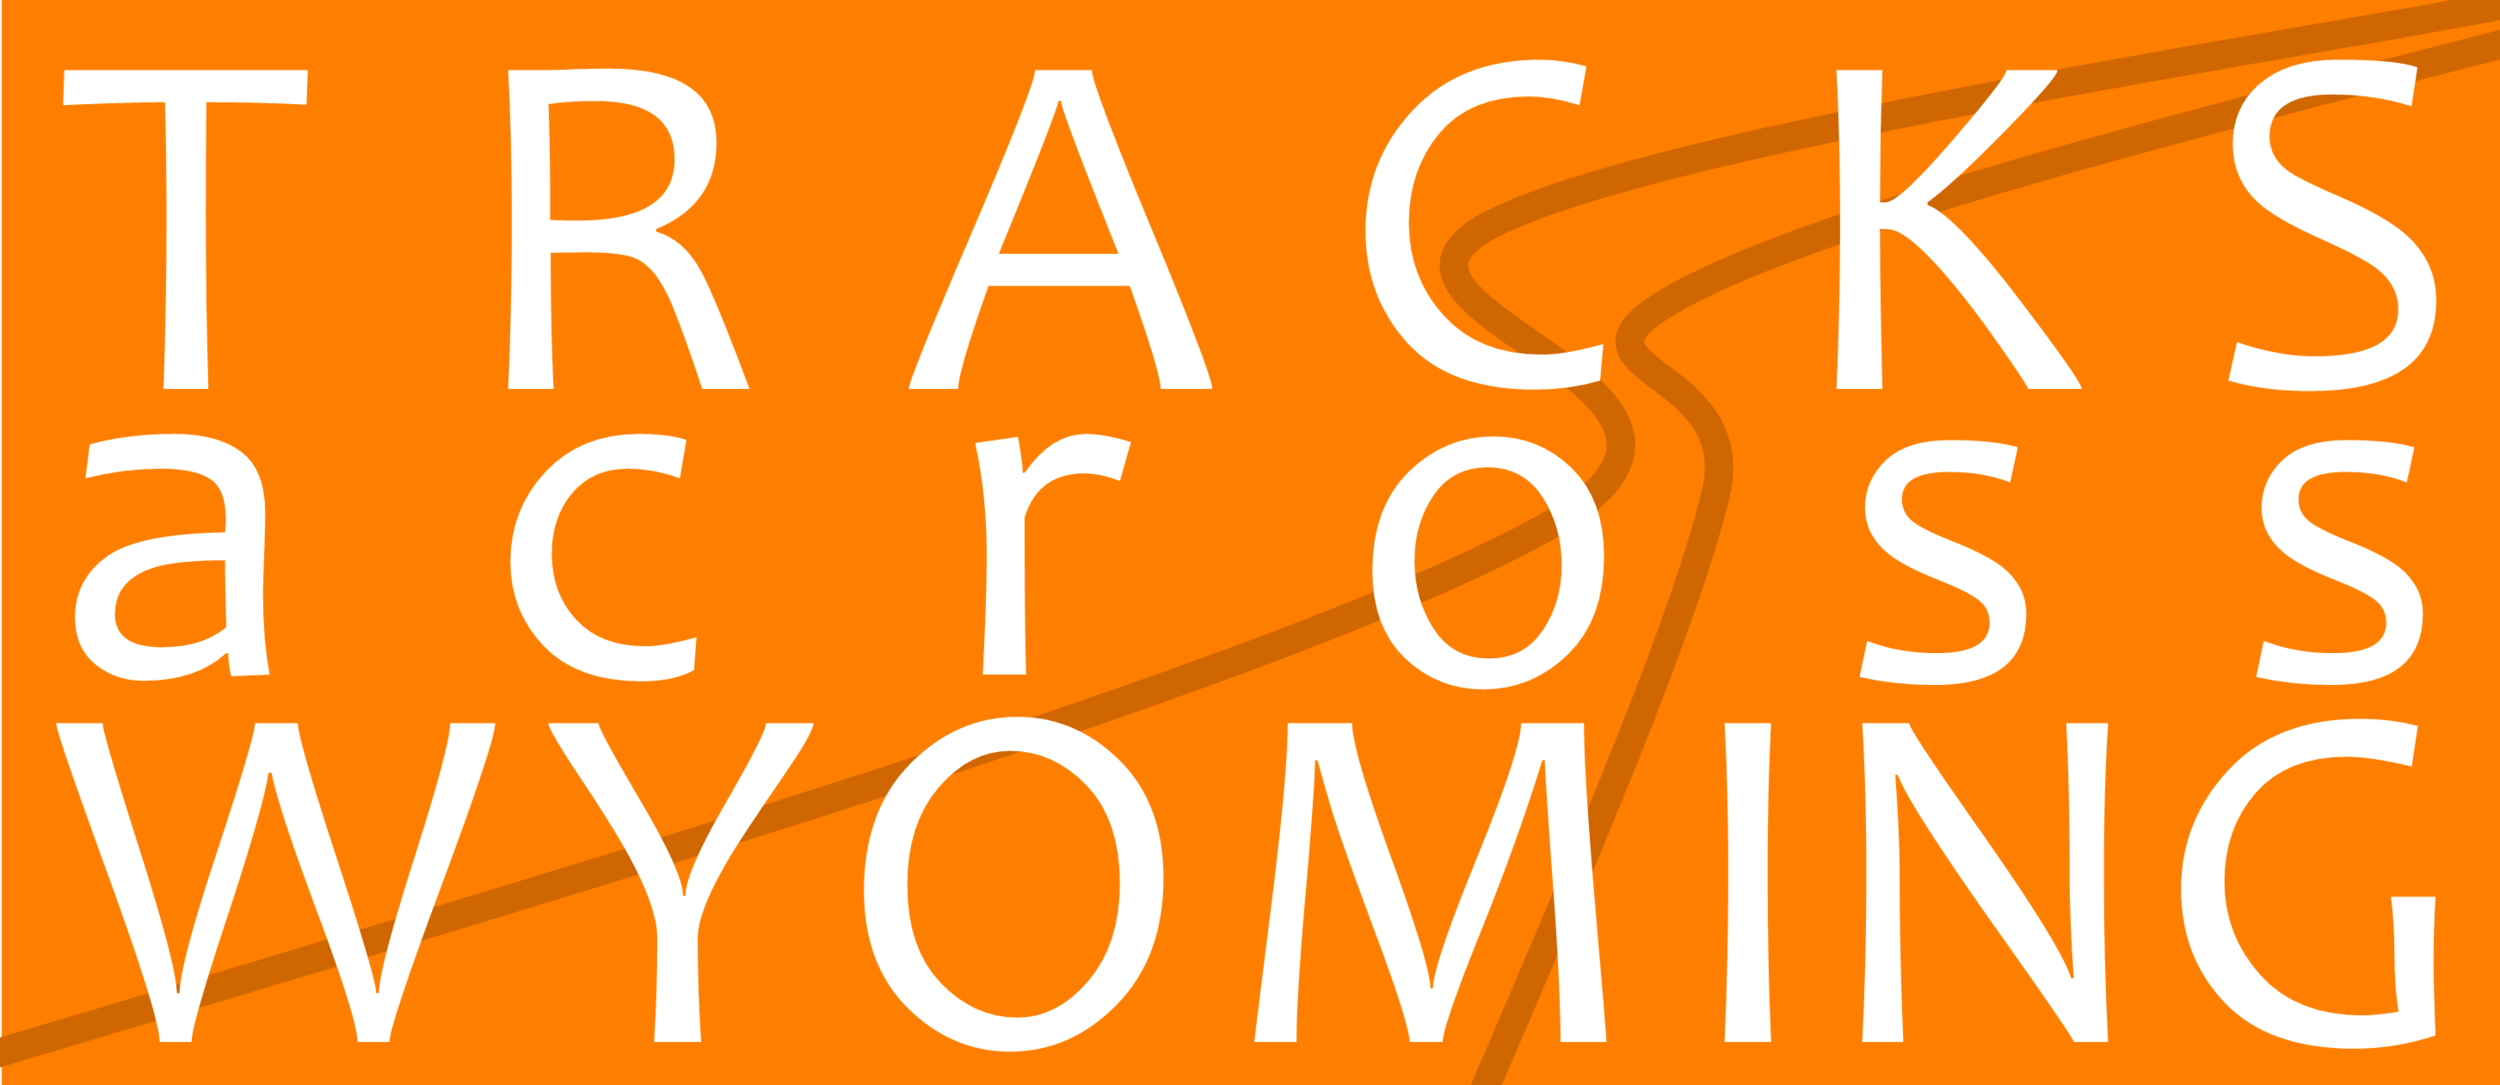 Click the logo to learn more about Tracks Across Wyoming